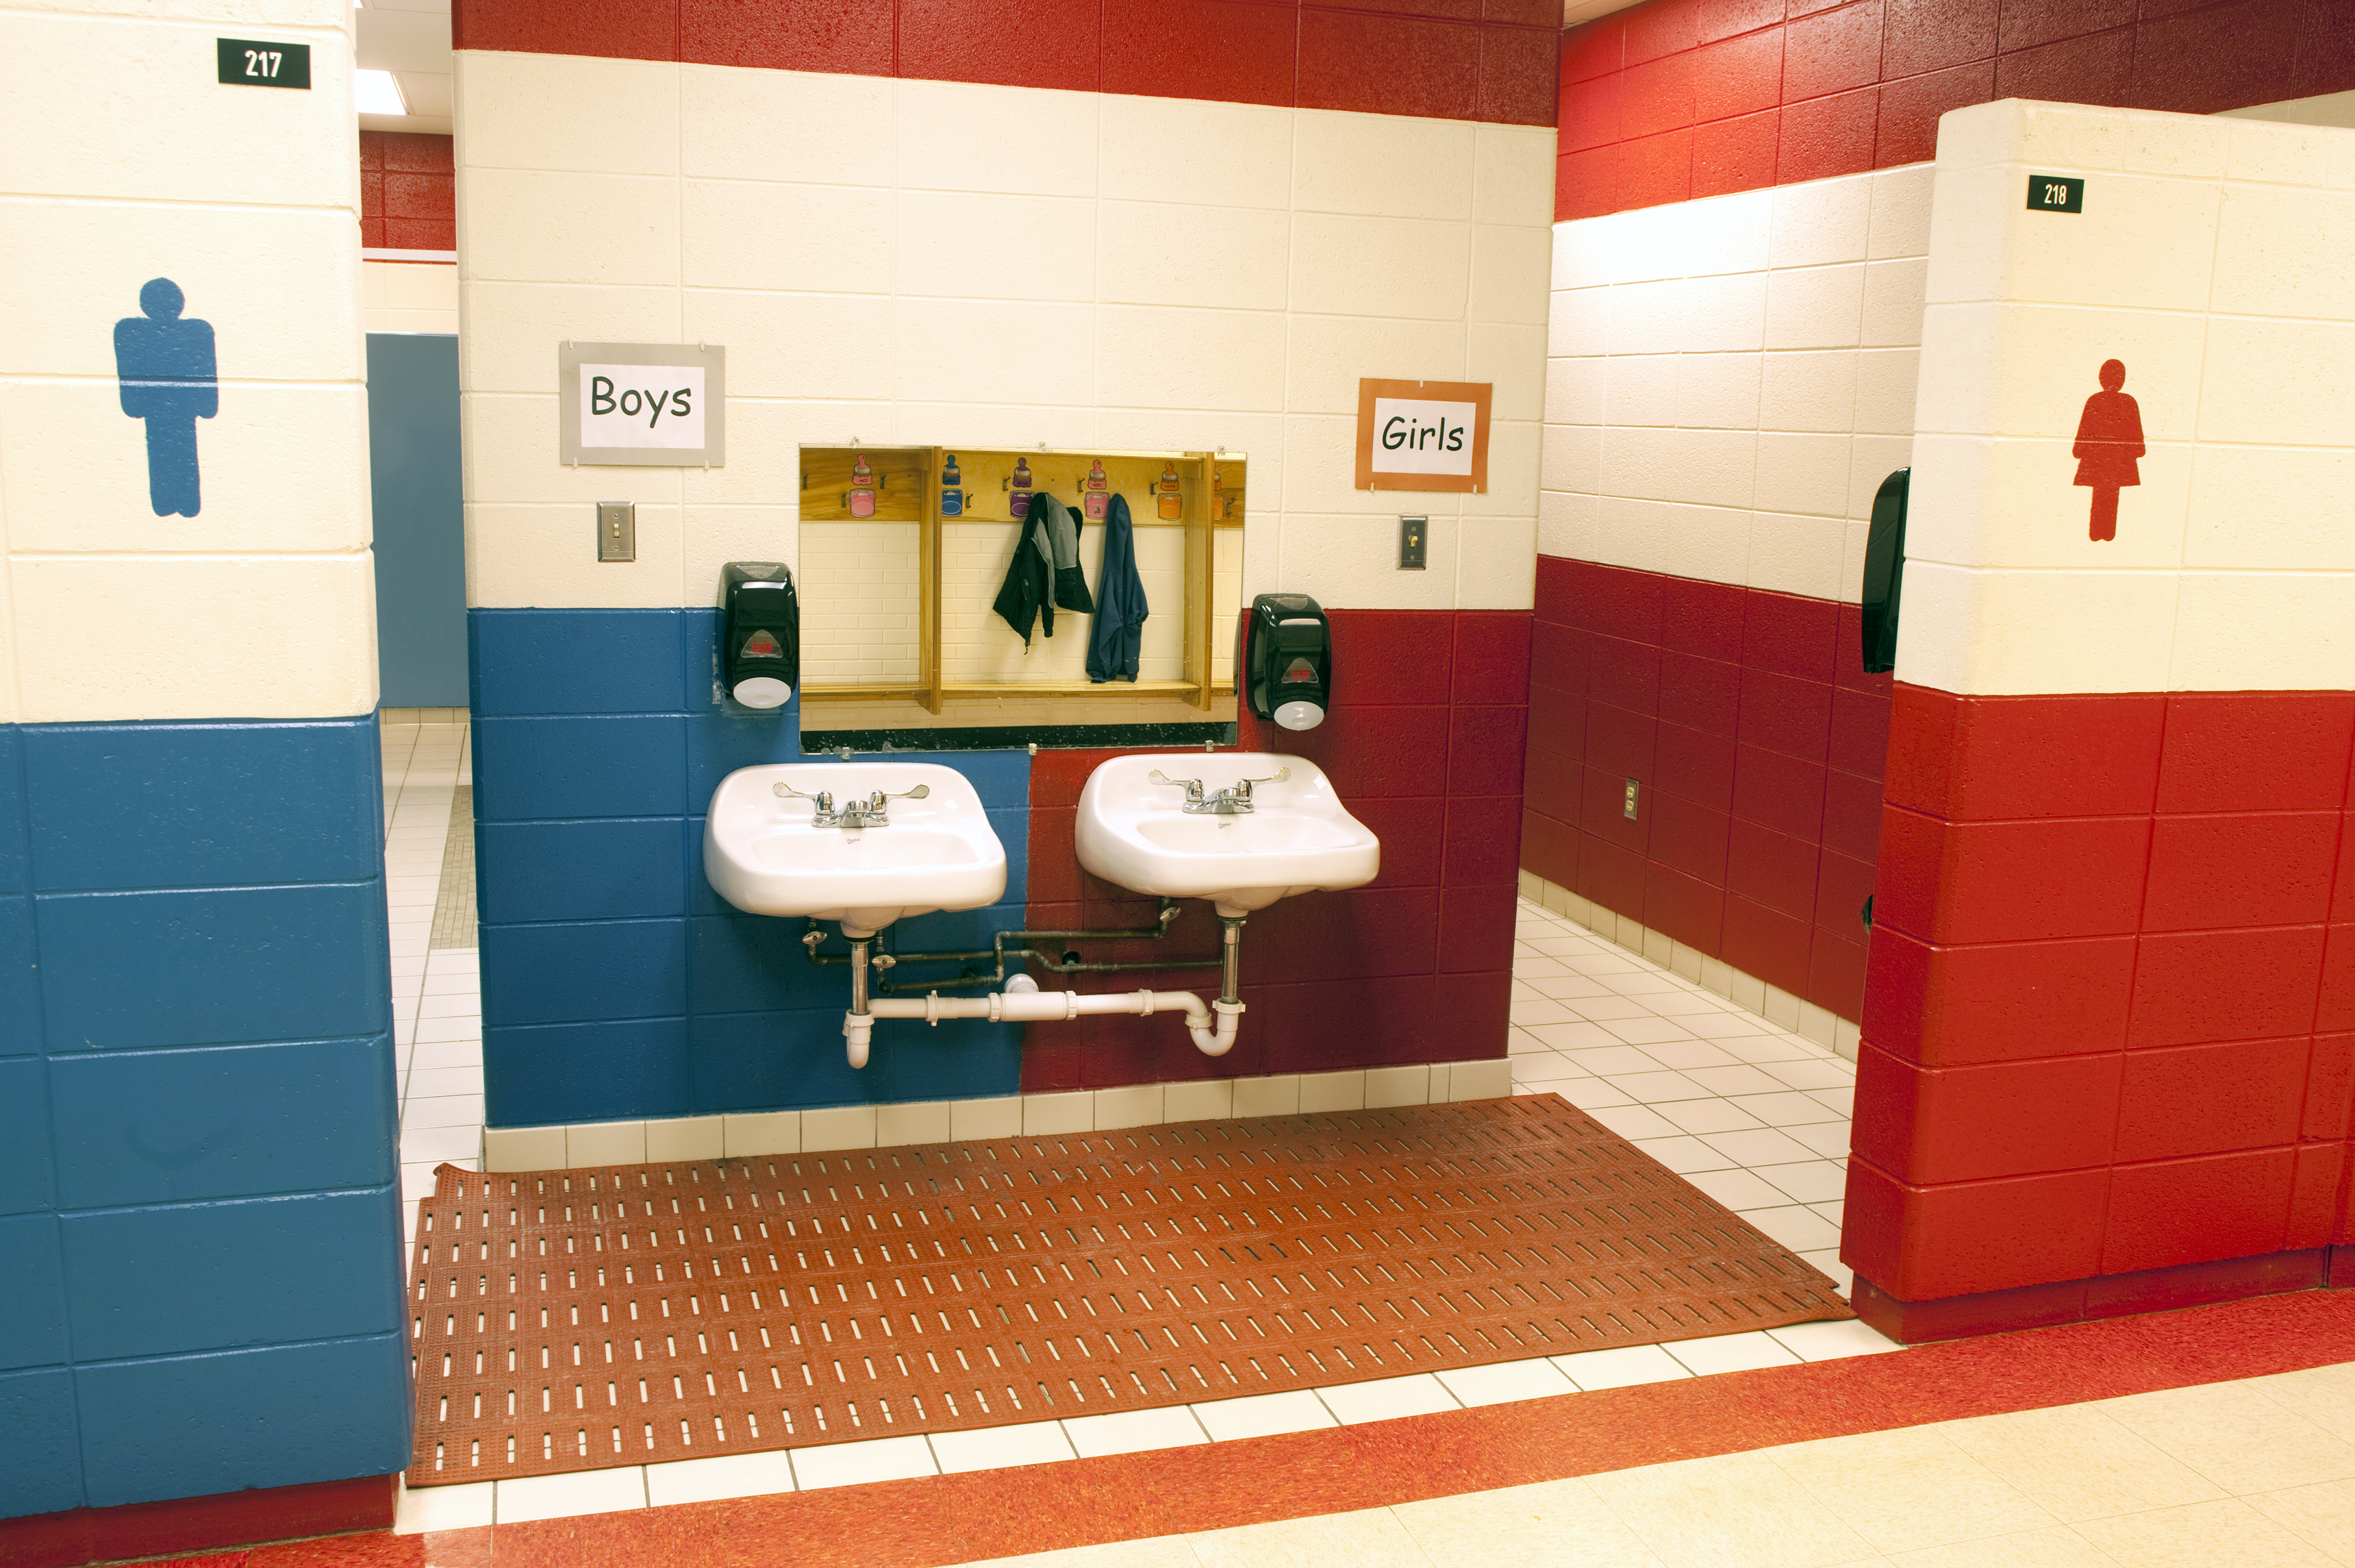 an essay on bathroom rights in schools Student rights retrieved april 25, 2018 from although those in private schools can claim rights under the common law and provincial education acts.